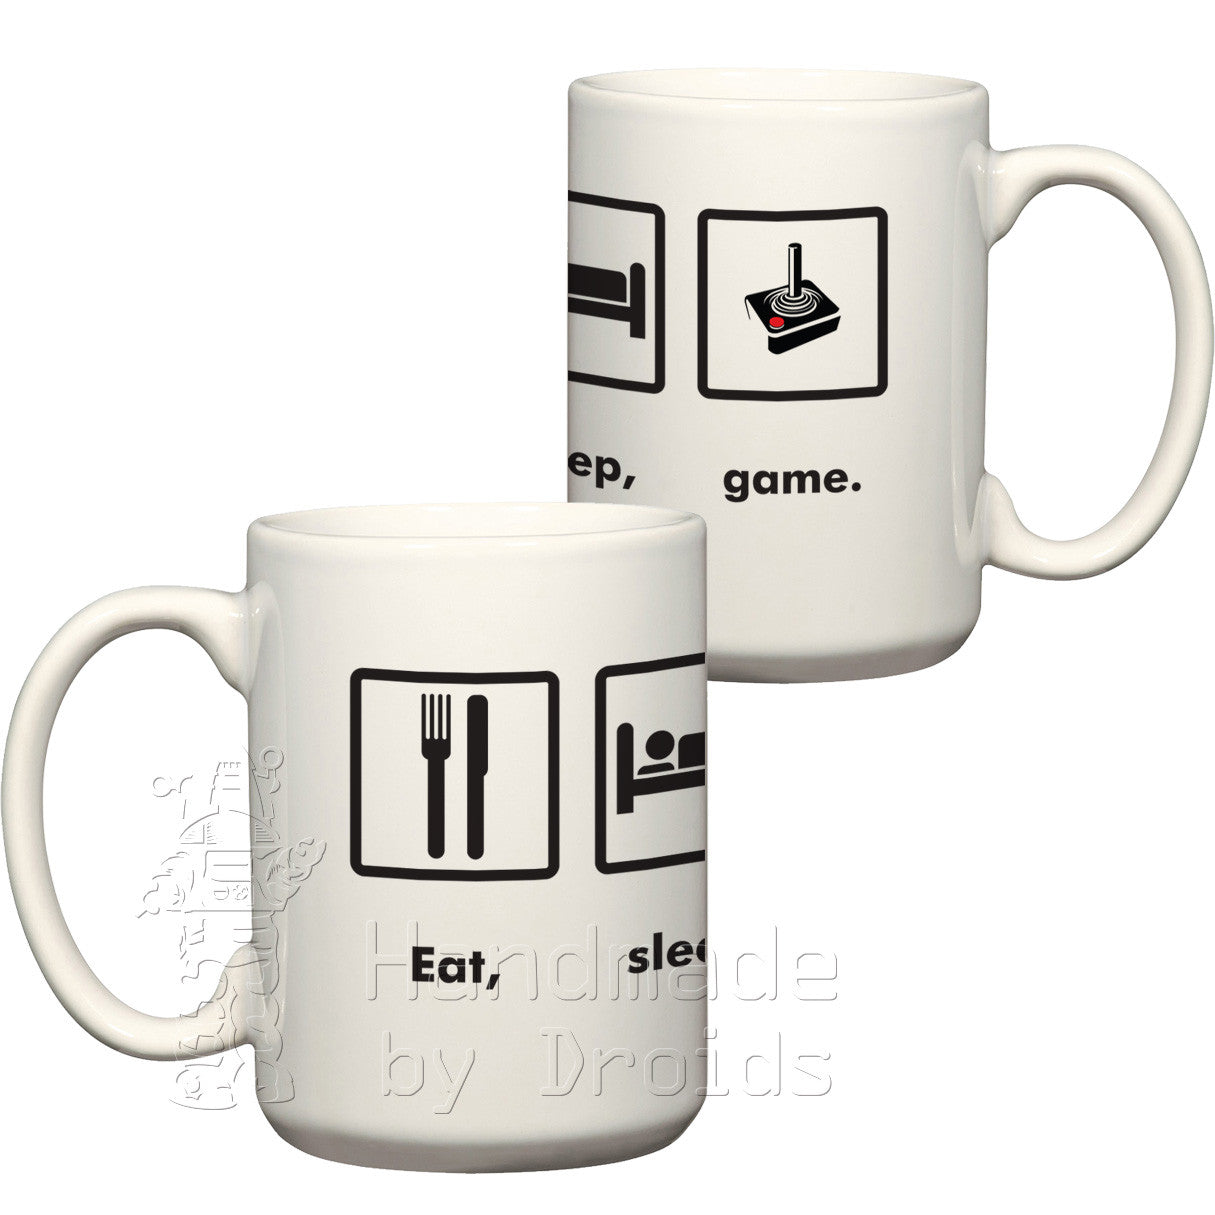 Eat, sleep, game atari 2600 joystick coffee cup